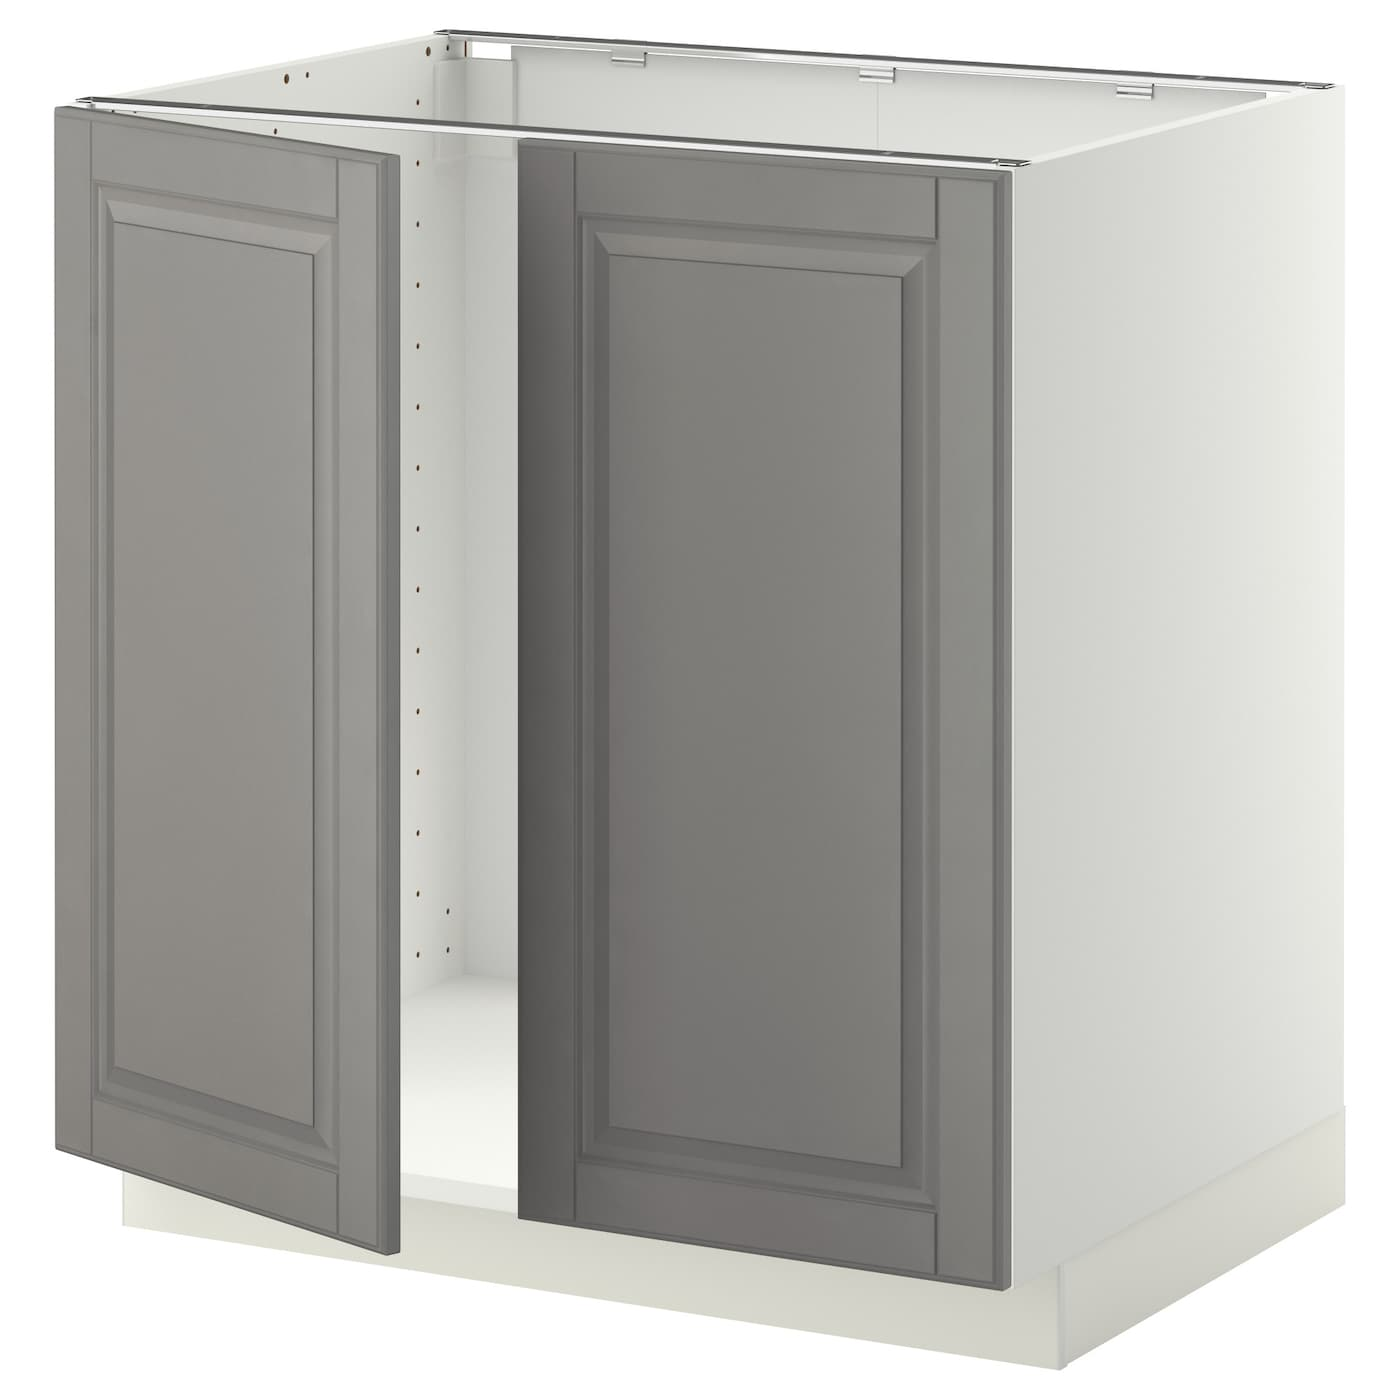 Metod base cabinet for sink 2 doors white bodbyn grey - Ikea cabinet doors on existing cabinets ...